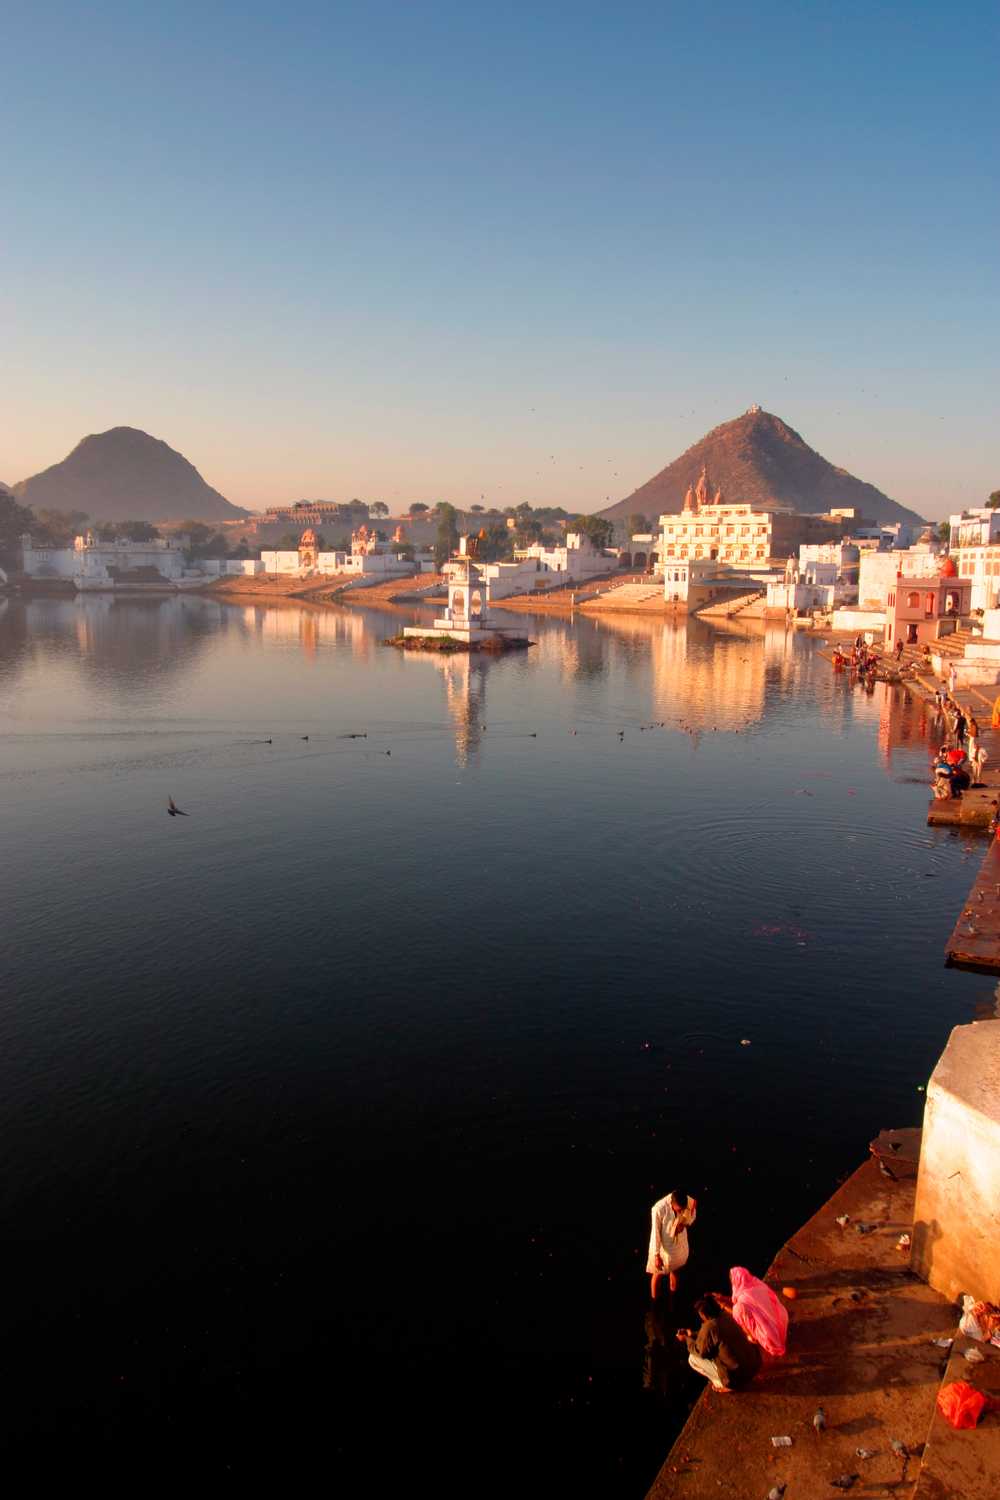 Puja on Pushkar's holy lake  Photo by Searching for Satori